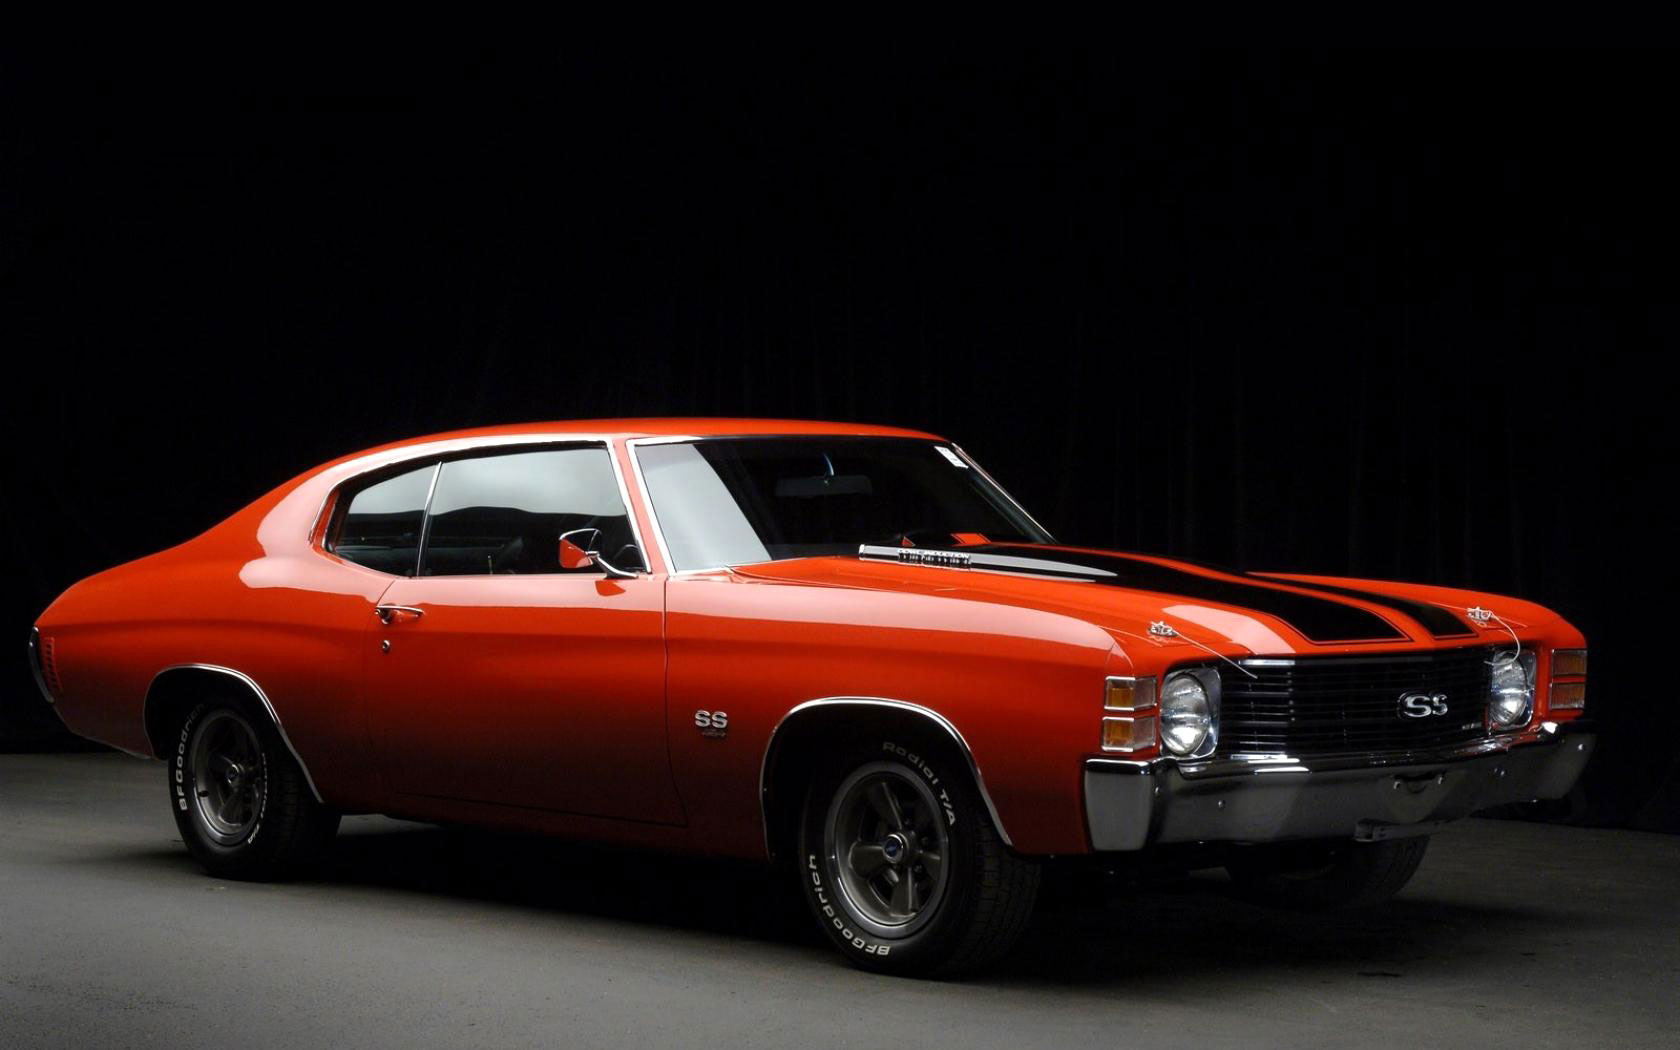 Sports Cars Images 1971 Chevrolet Chevelle Ss Hd Wallpaper And Chevy Truck Wiring Harness Background Photos